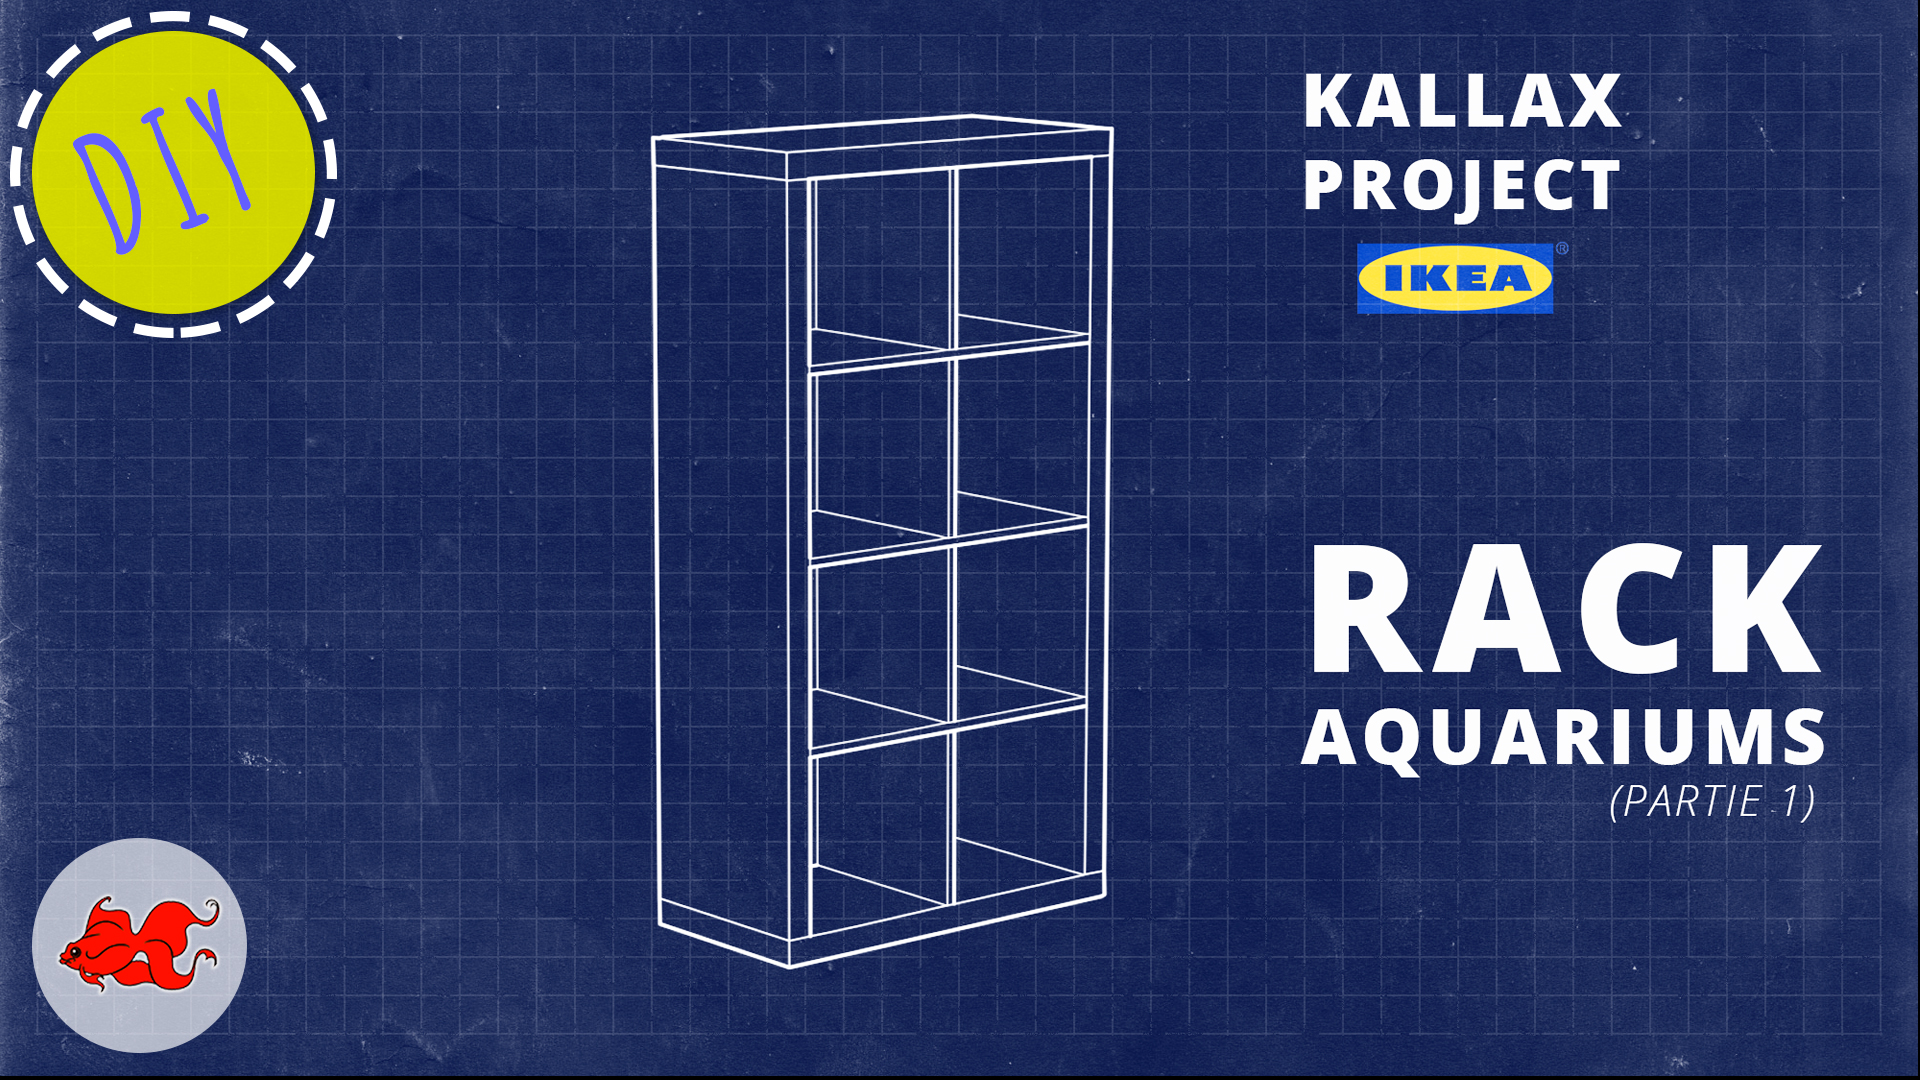 Rack aquariums Kallax Ikea